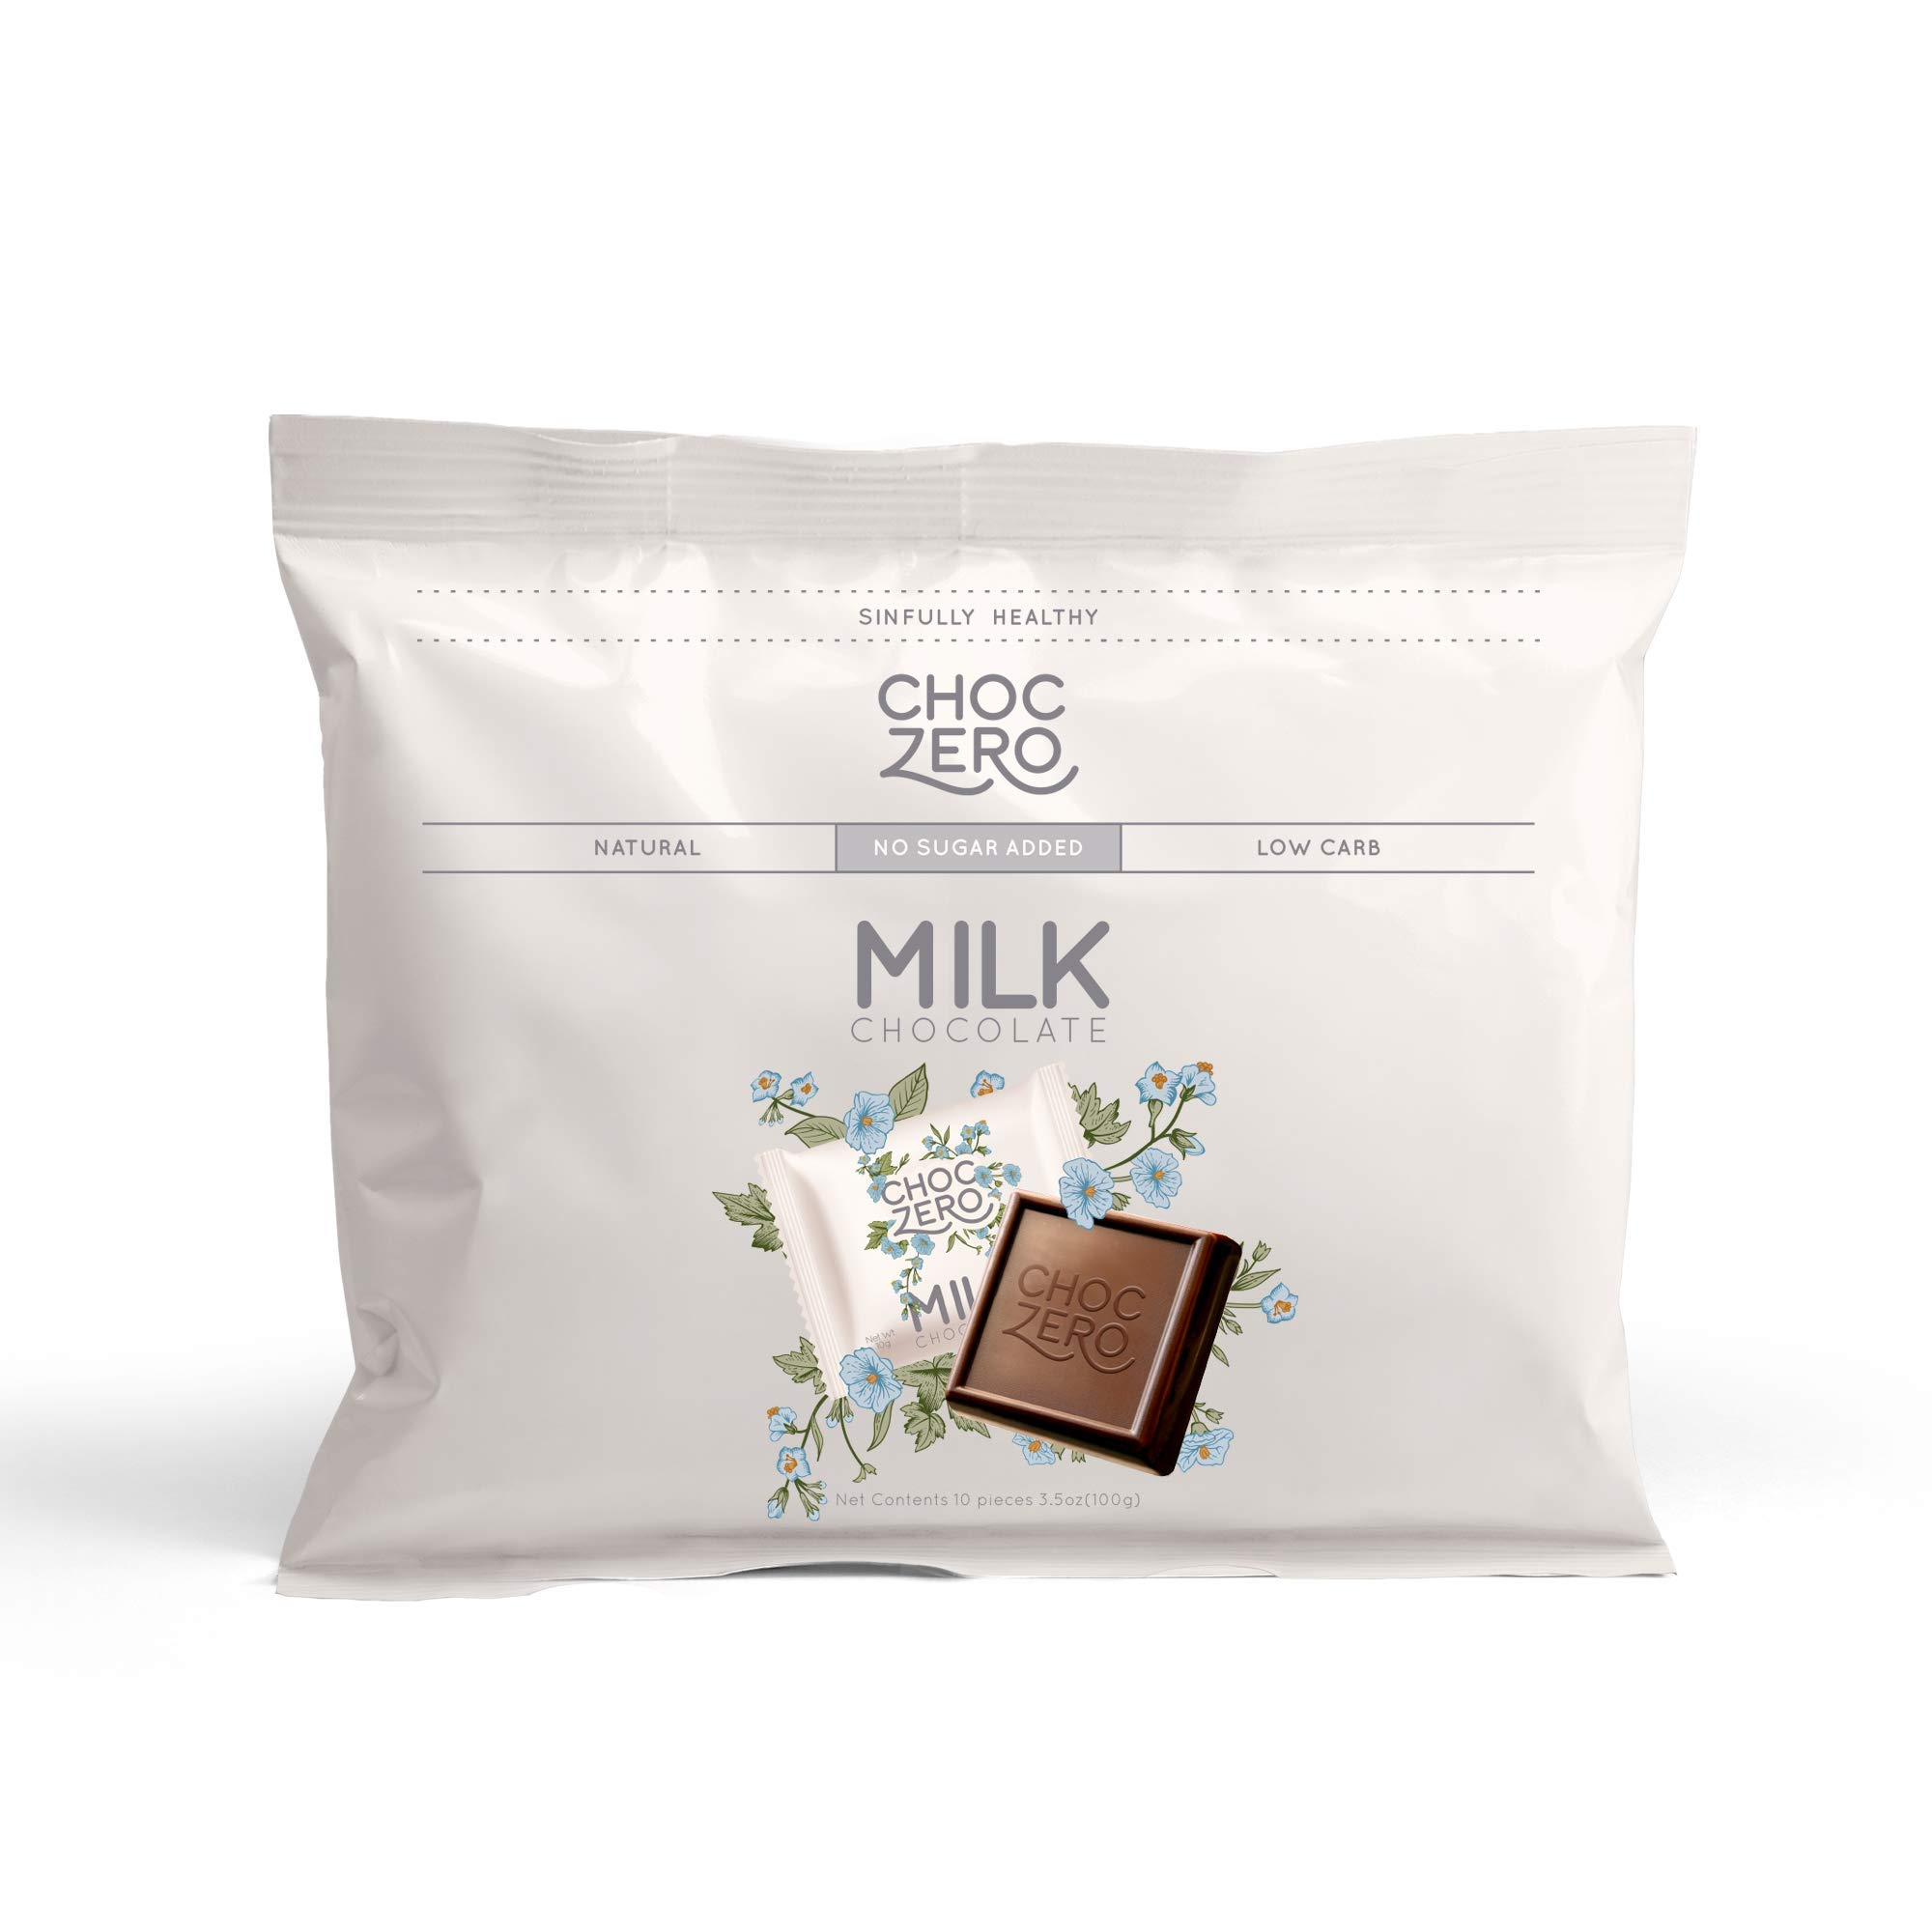 ChocZero Premium Milk Chocolate, 45% Cocoa, No Sugar Added, Low Carb. No Sugar Alcohol, All Natural, Non-GMO - (6 Bags, 60 Pieces)